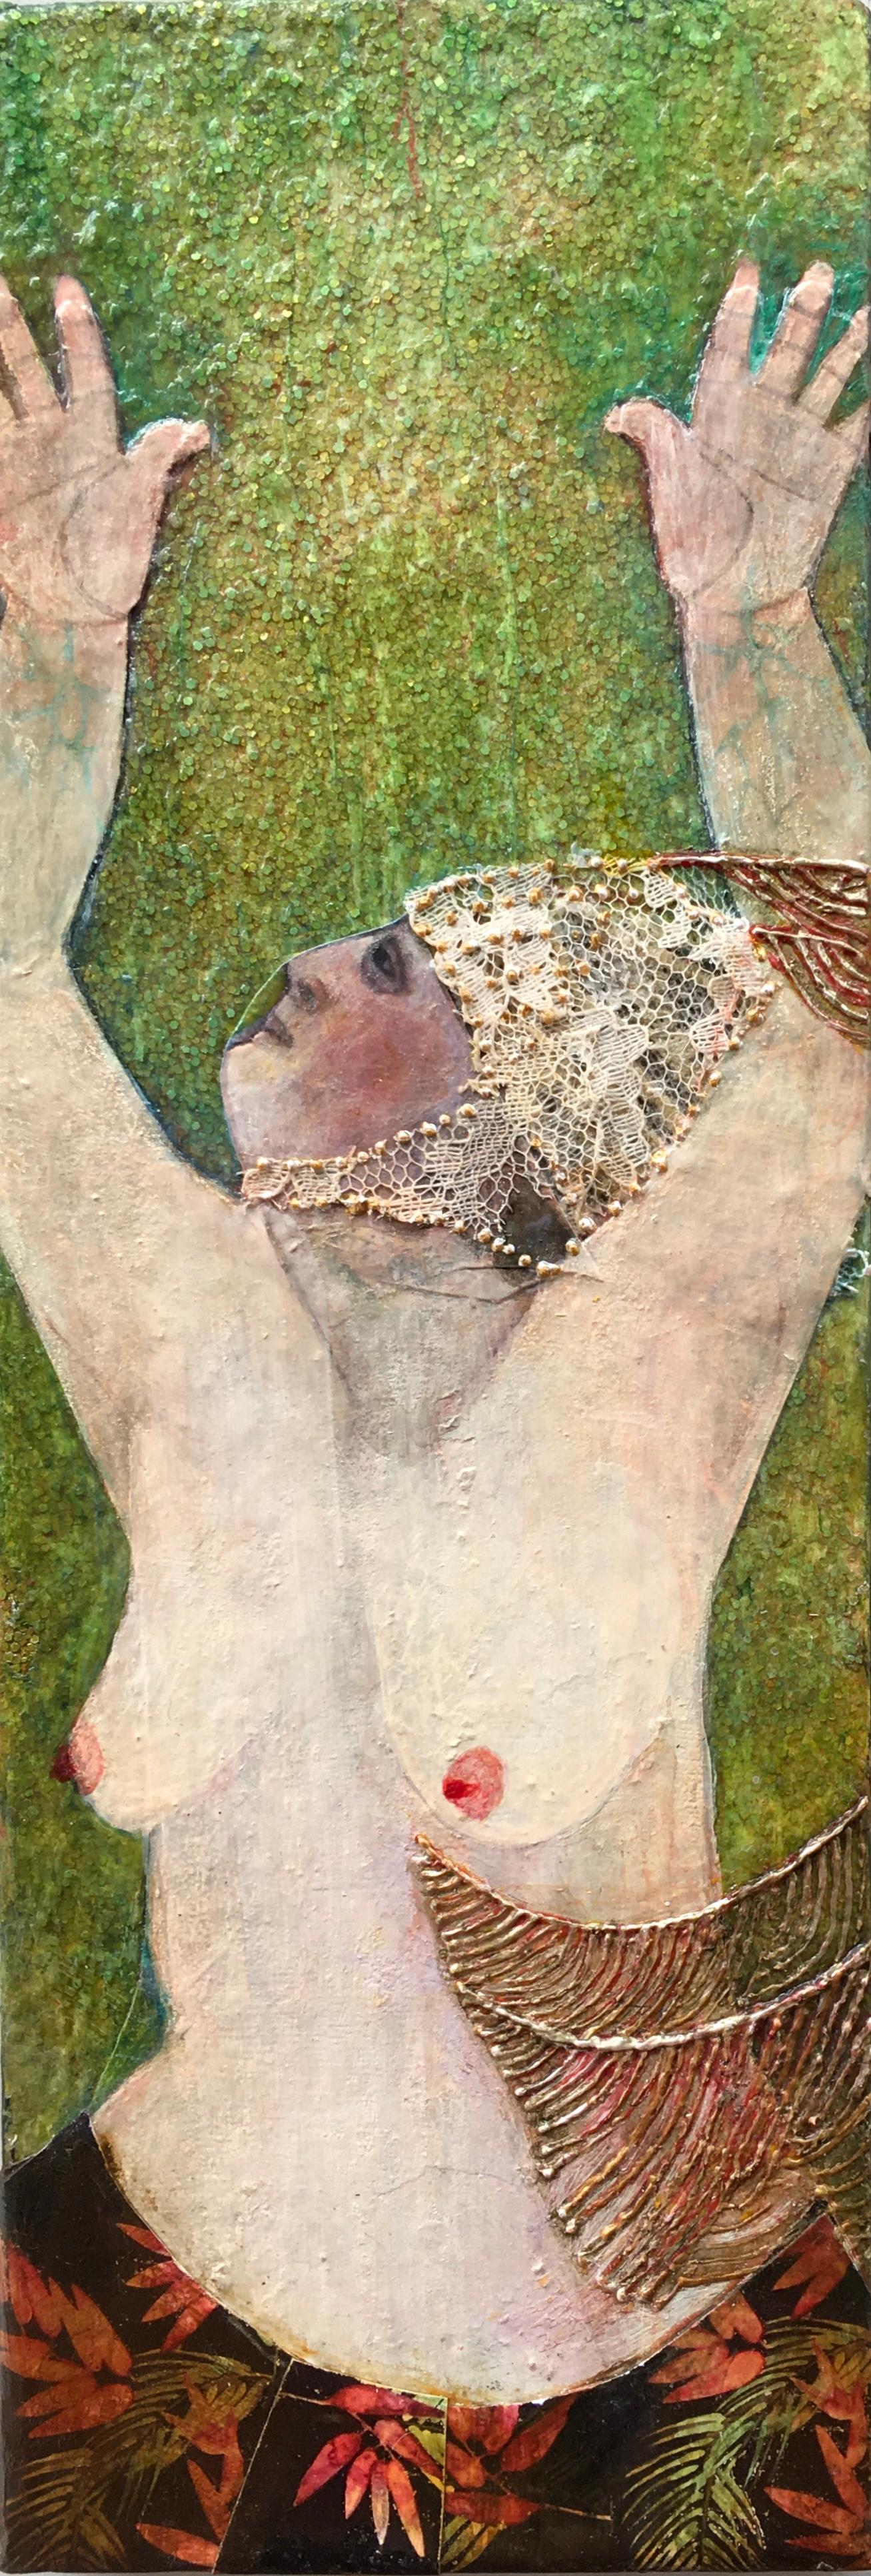 Showgirl, nude portrait of performer, green and red, mixed media on panel